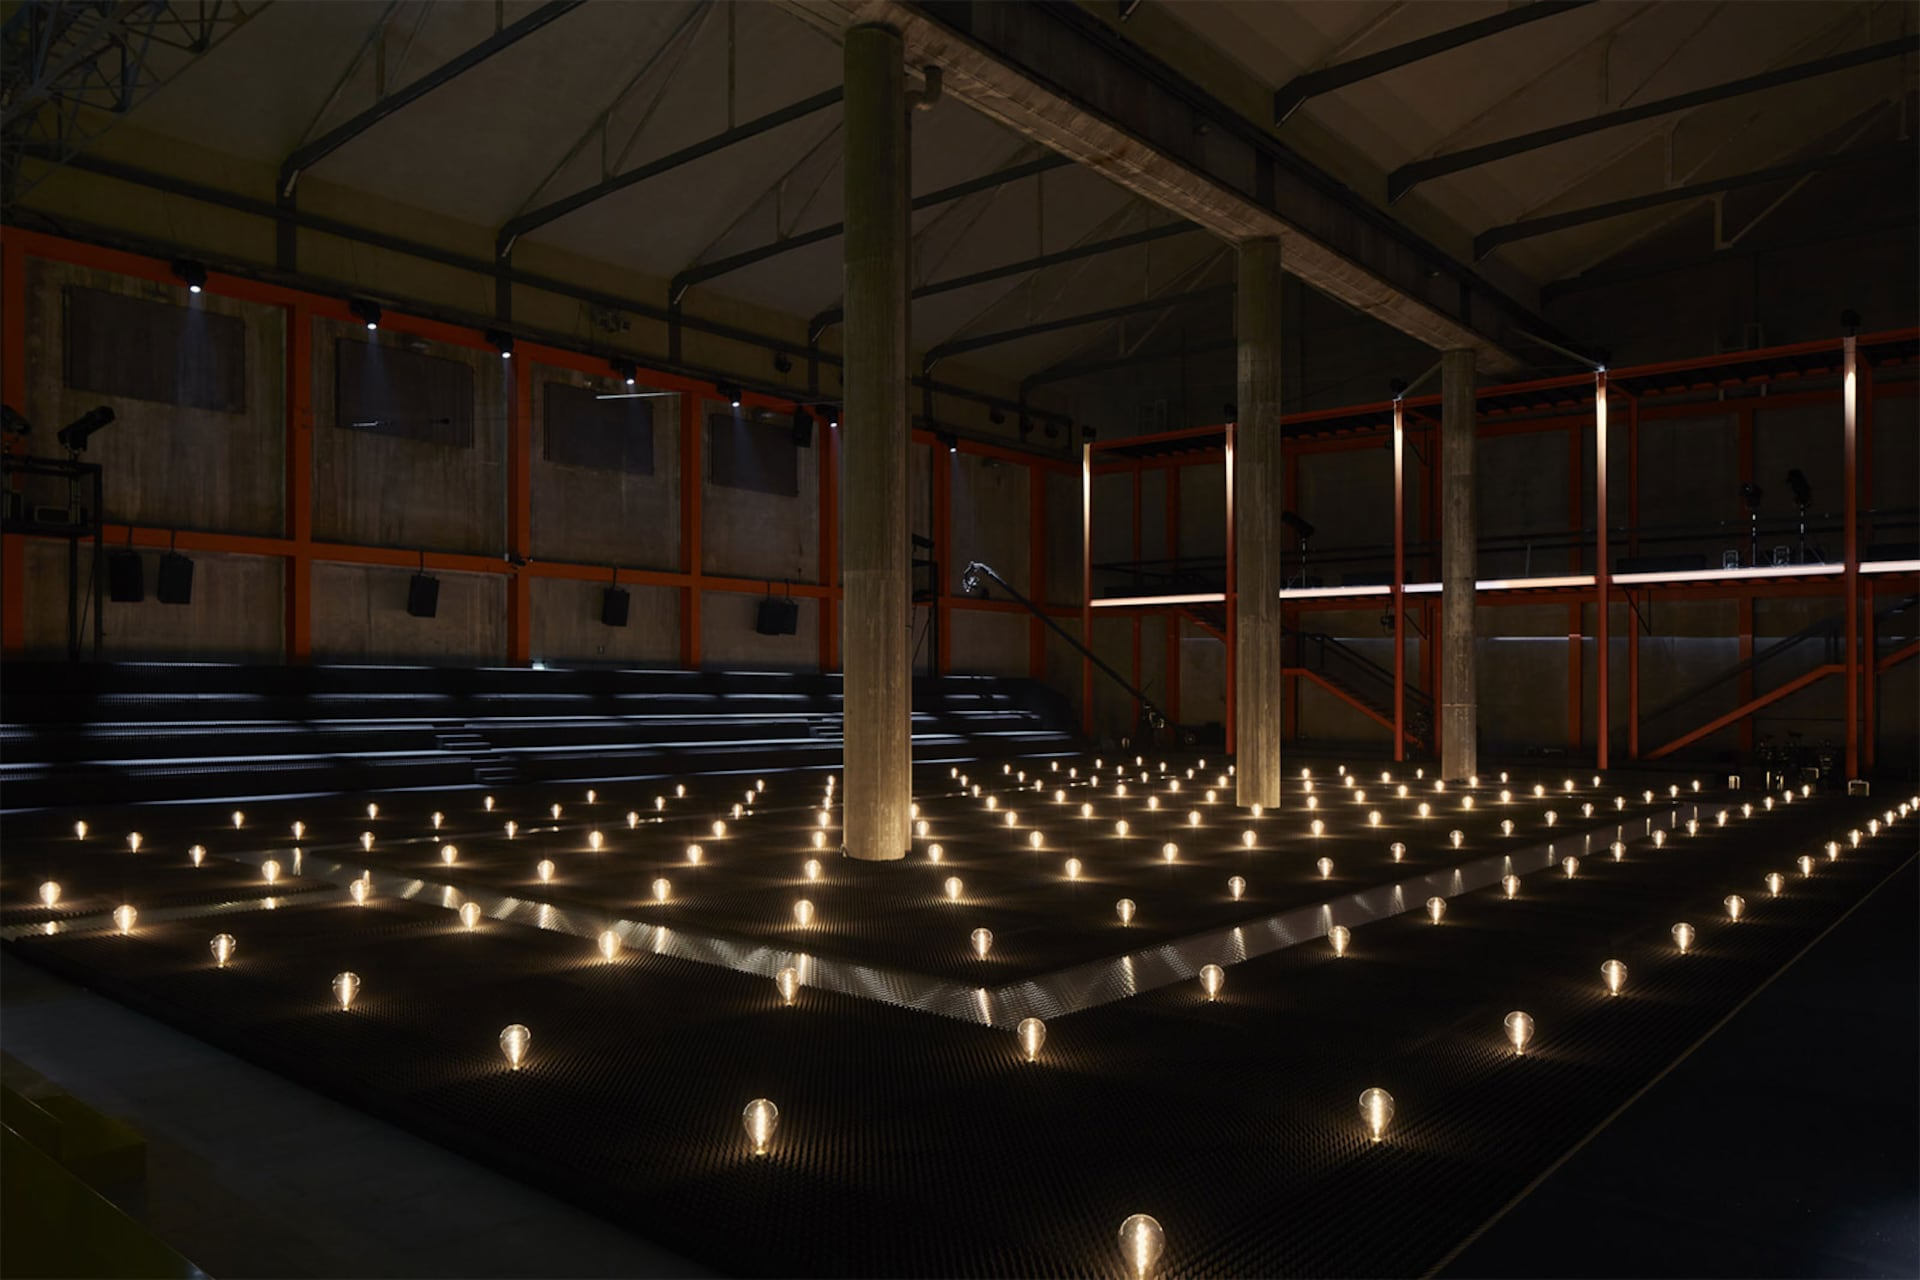 Prada Fall Winter 2019 Men's and Women's fashion show space detail 10 For the 2019 Fall/Winter Prada shows – both Men's and Women's, AMO has created a theatrical field of lights in the grand hall of the Deposito, the multifunctional venue for performances that is part of the Fondazione Prada complex.